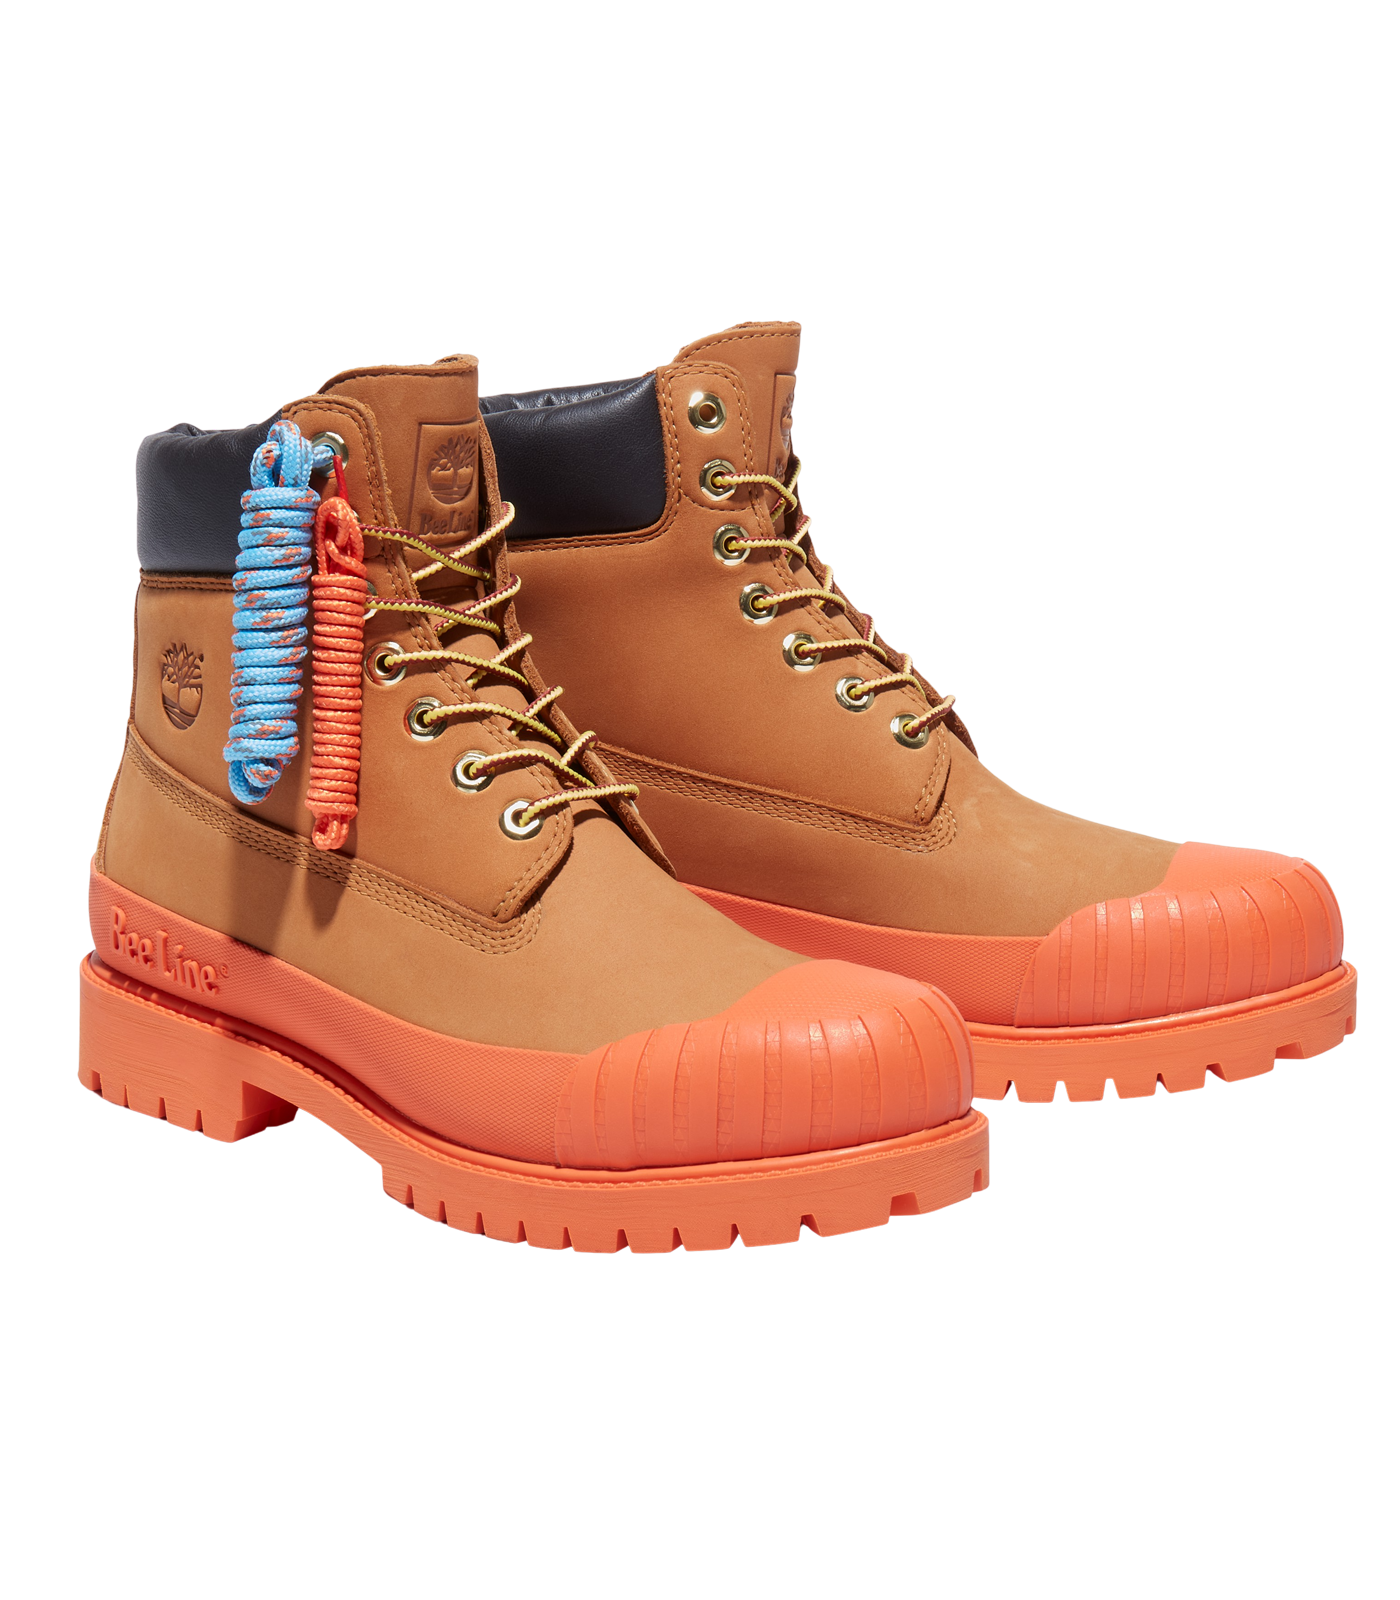 BEE LINE & TIMBERLAND 6-INCH RUBBER TOE BOOT - ORANGE